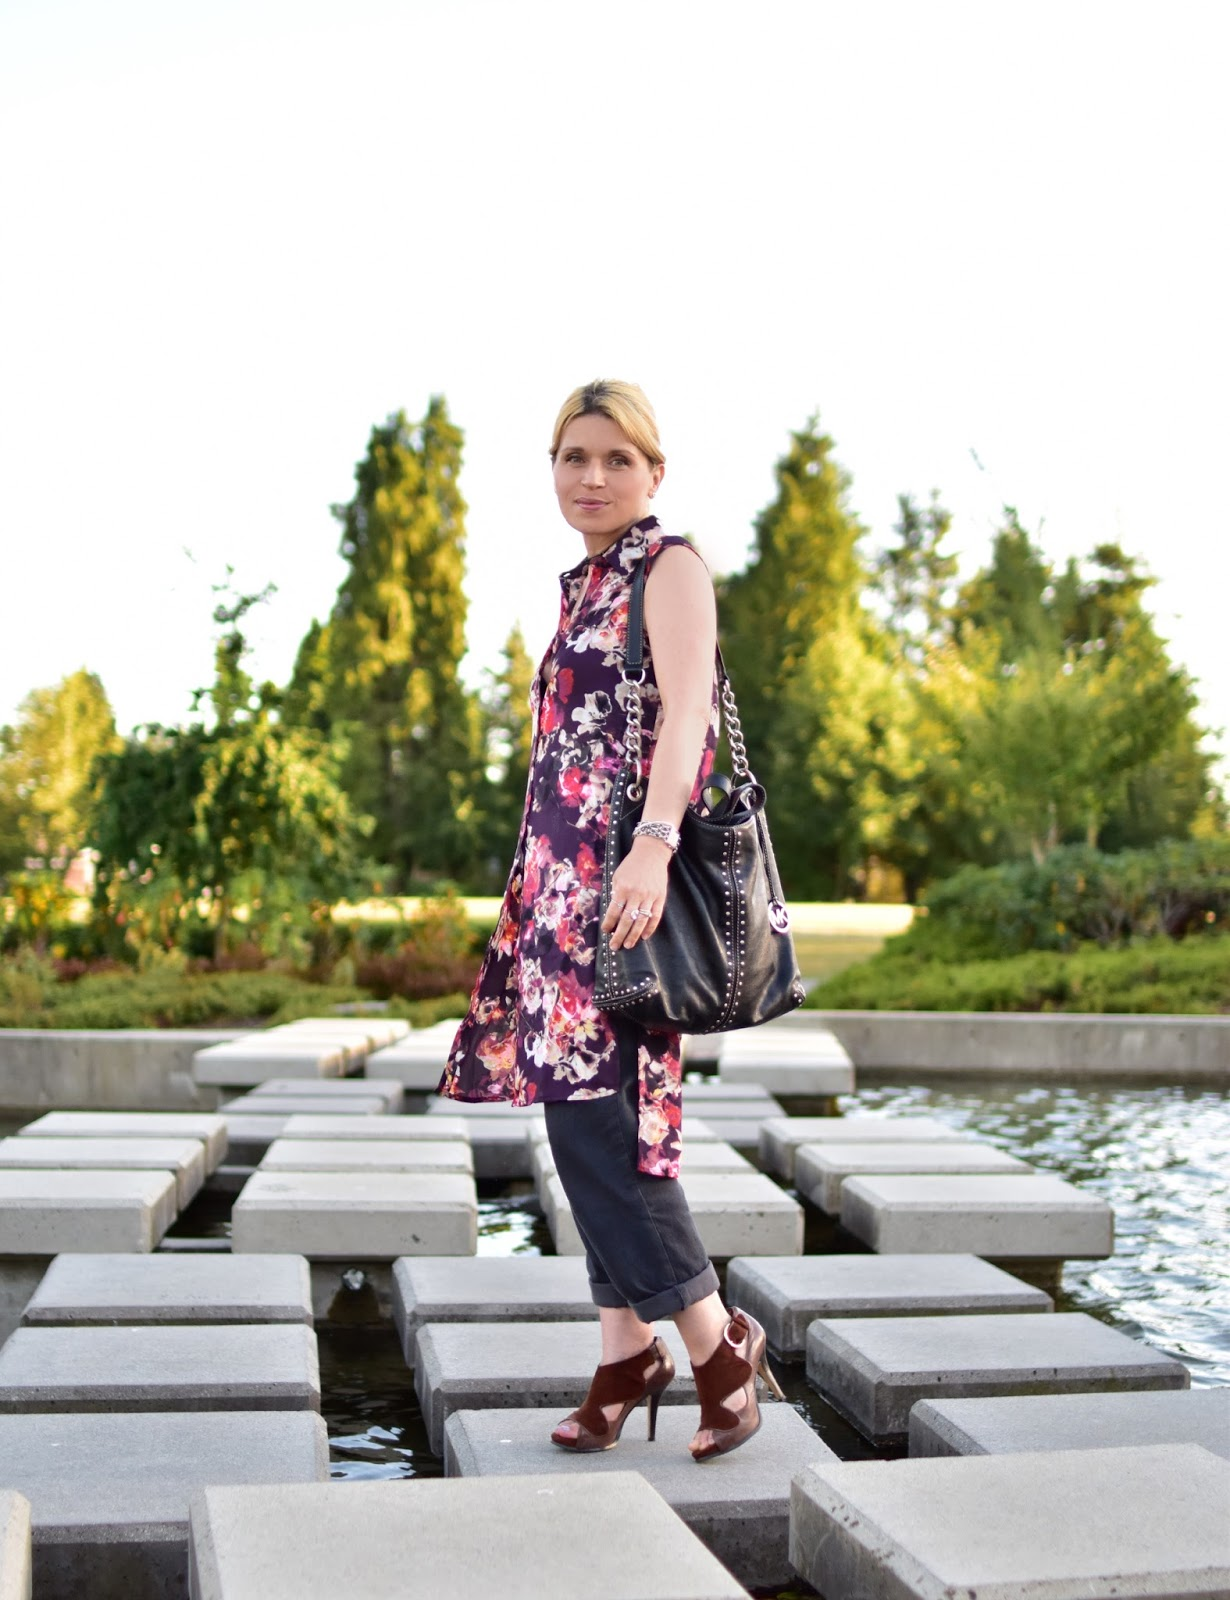 Monika Faulkner styles a floral tunic-style blouse with boyfriend trousers and open-toe stiletto shoes